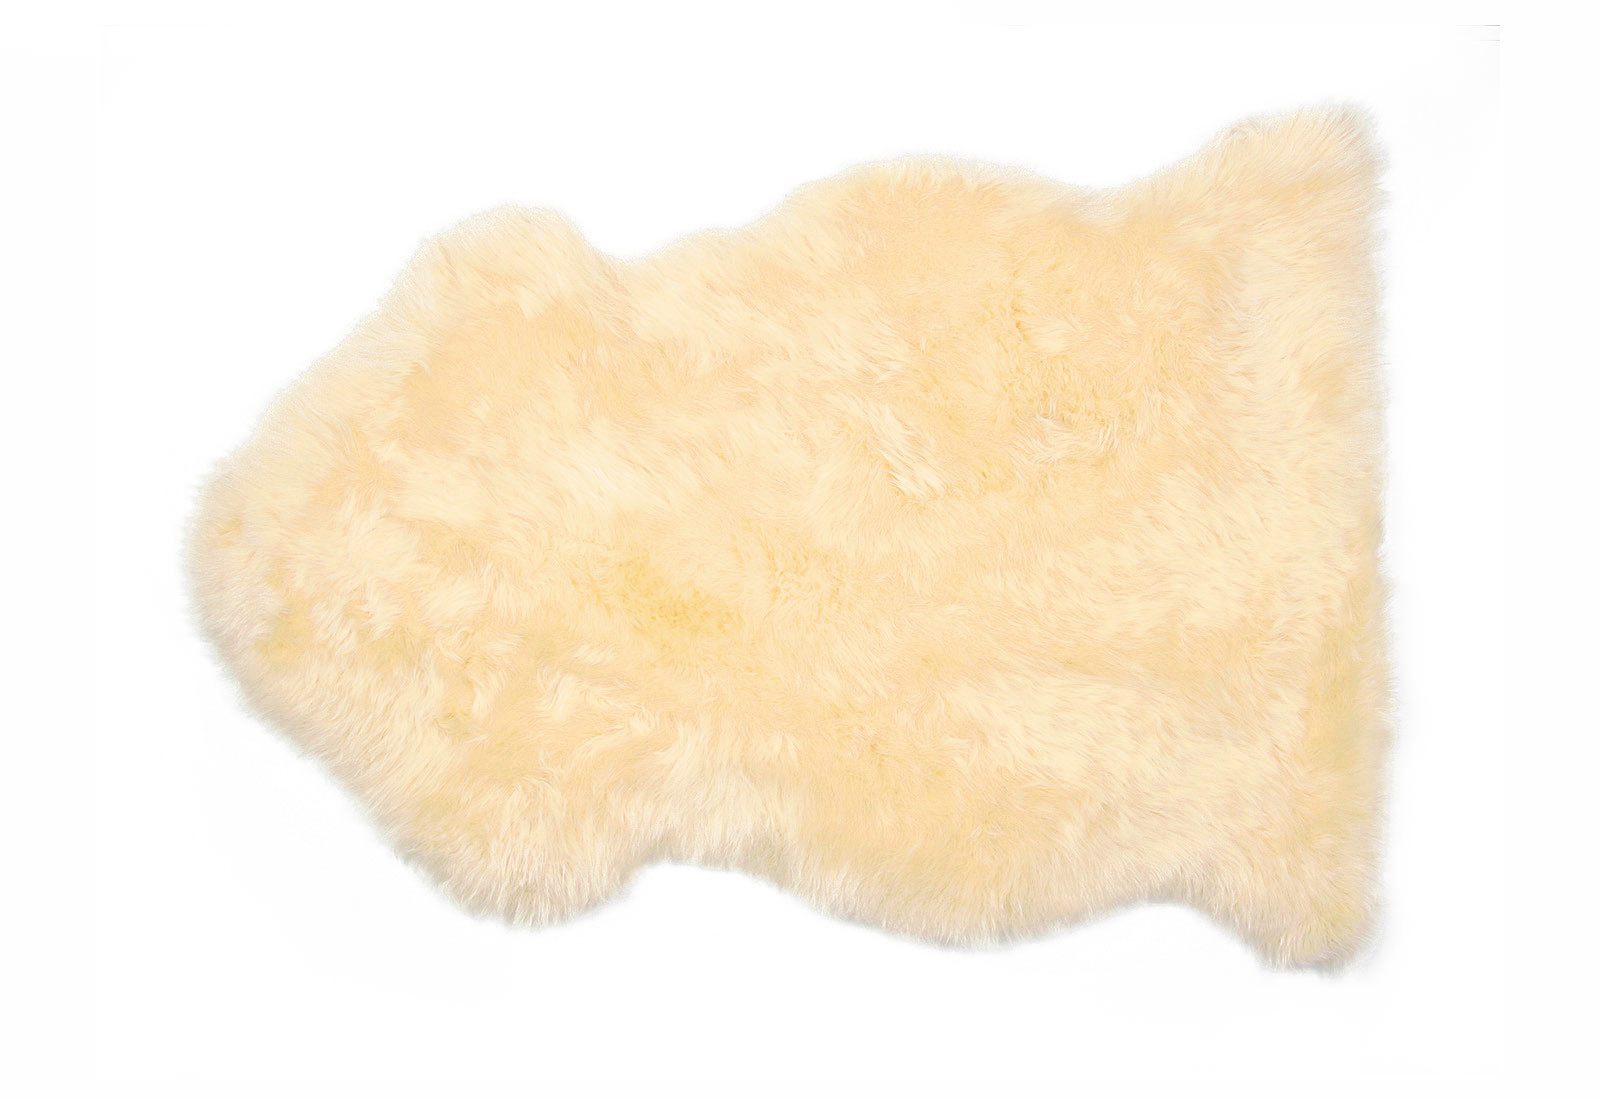 Cream Auskin Sheepskin Fur Rug